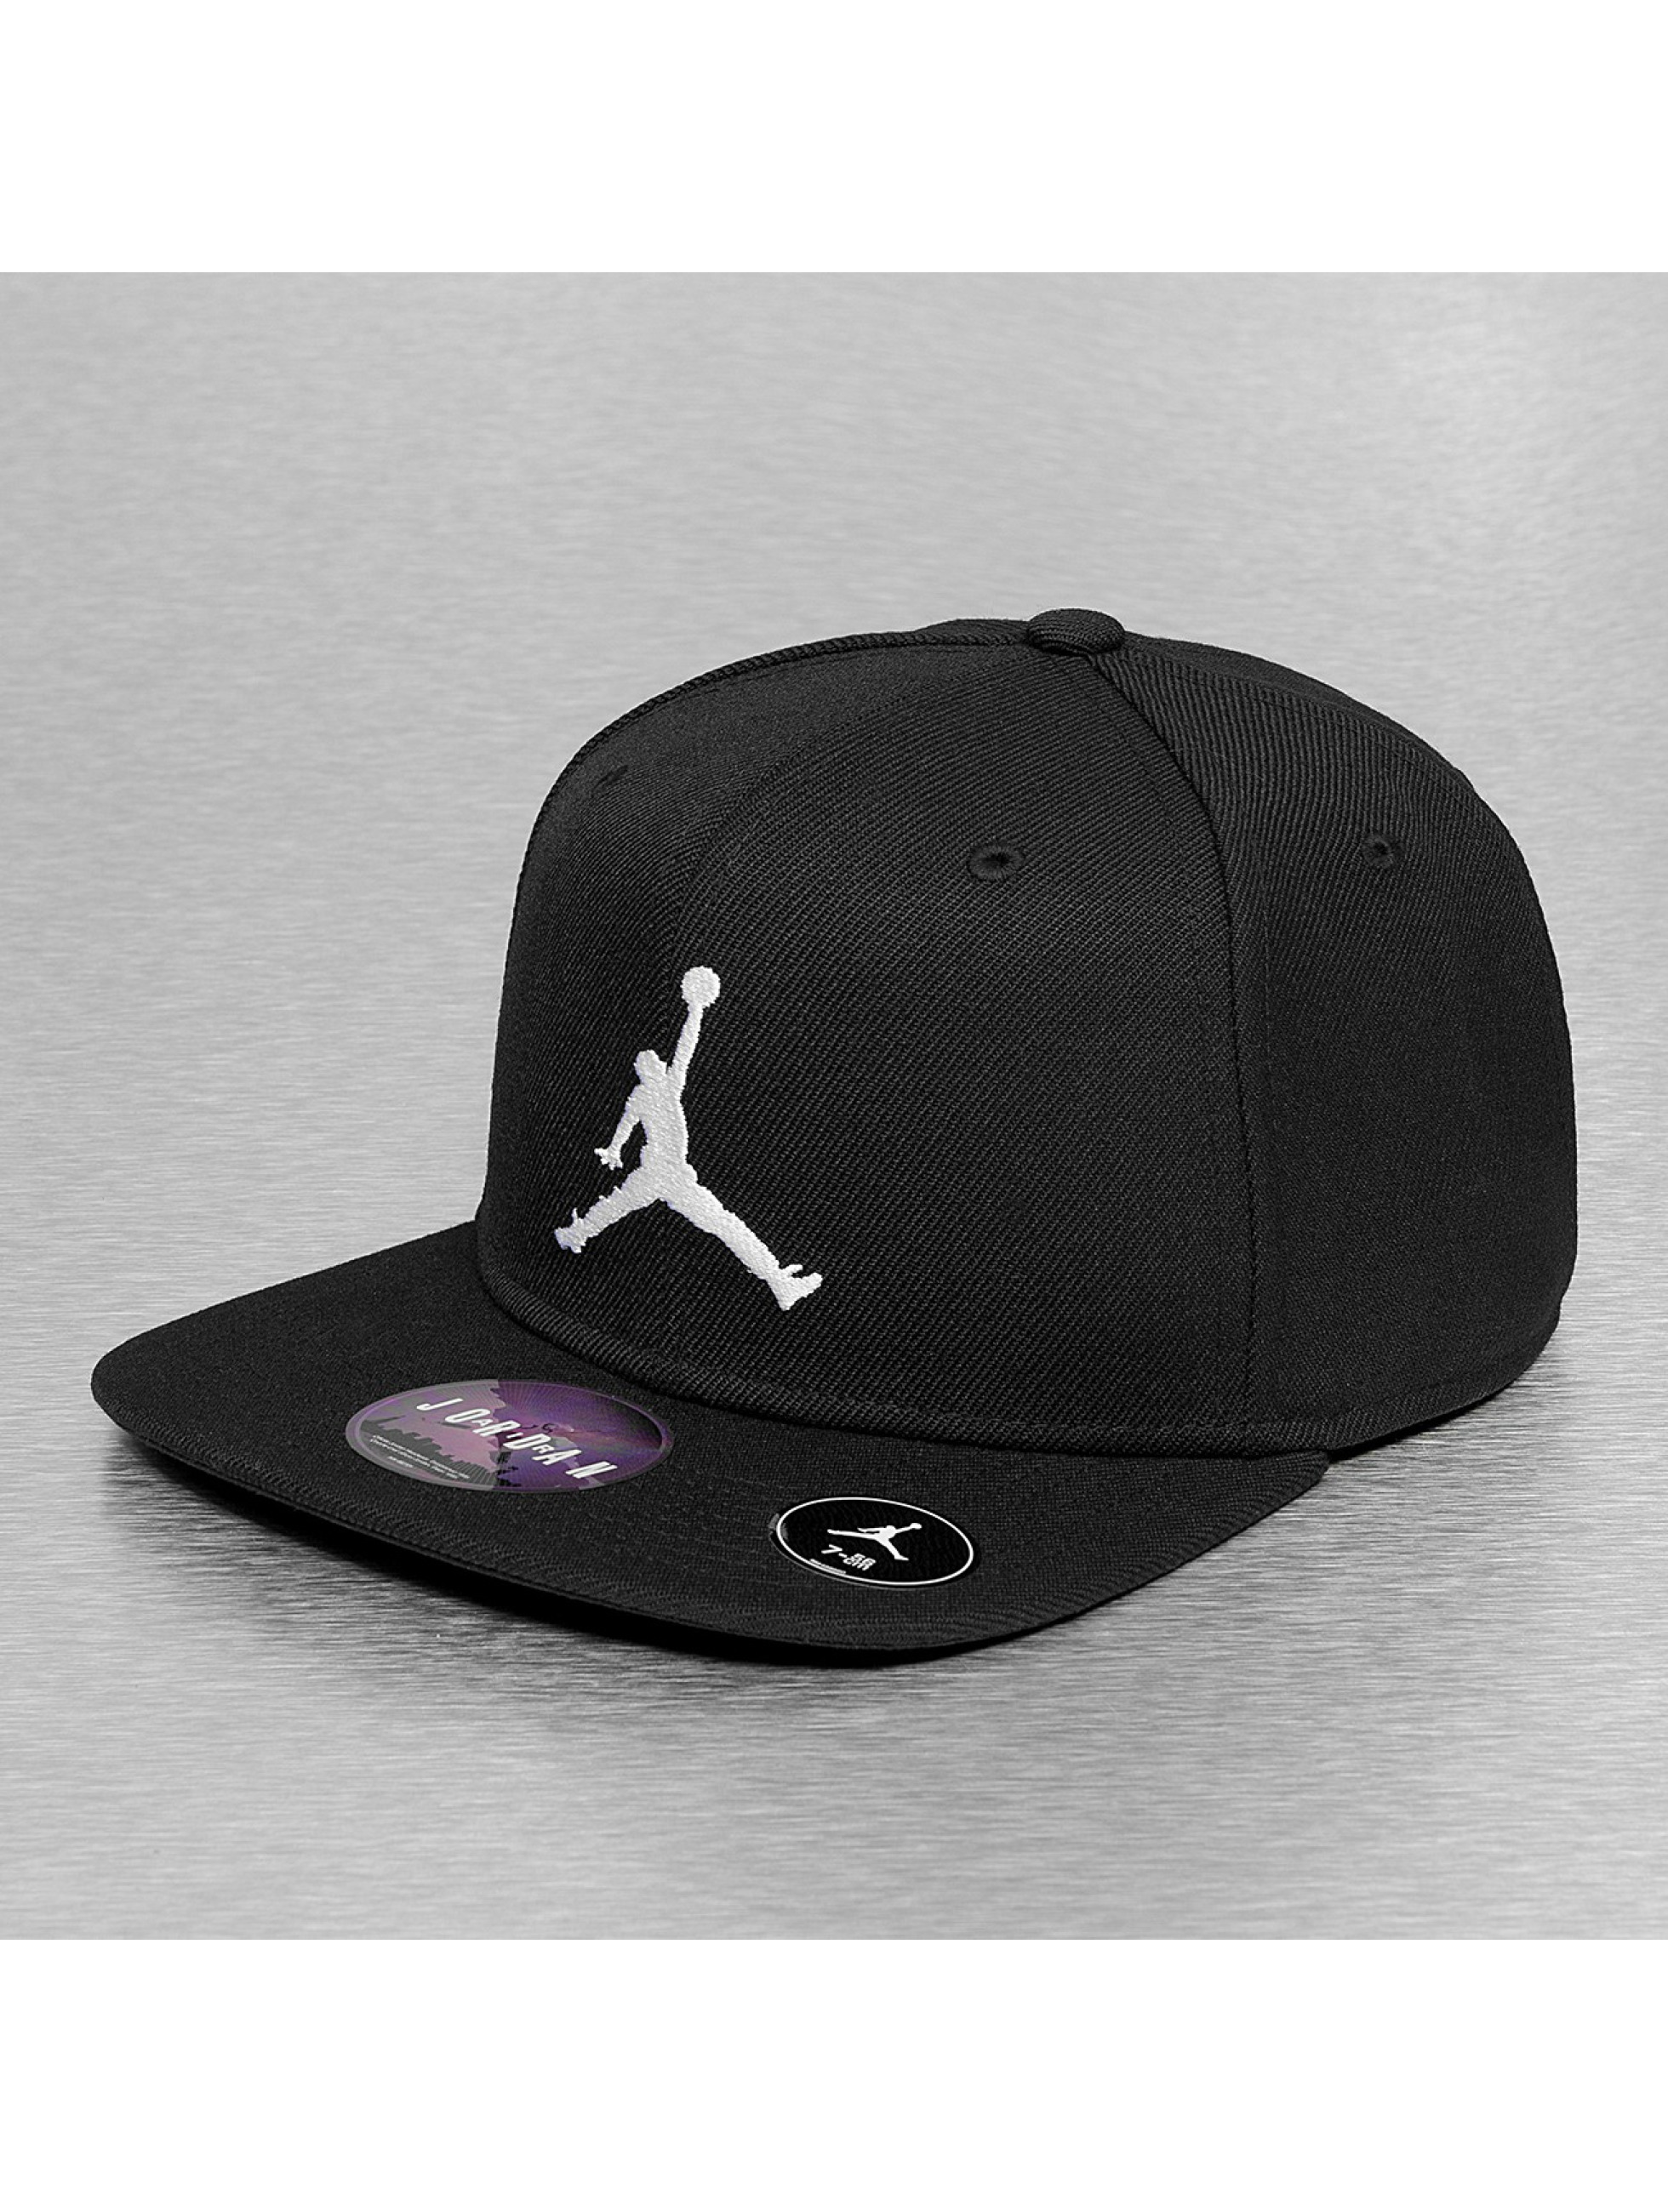 jordan jumpman noir casquette fitted jordan acheter pas cher casquette 172075. Black Bedroom Furniture Sets. Home Design Ideas